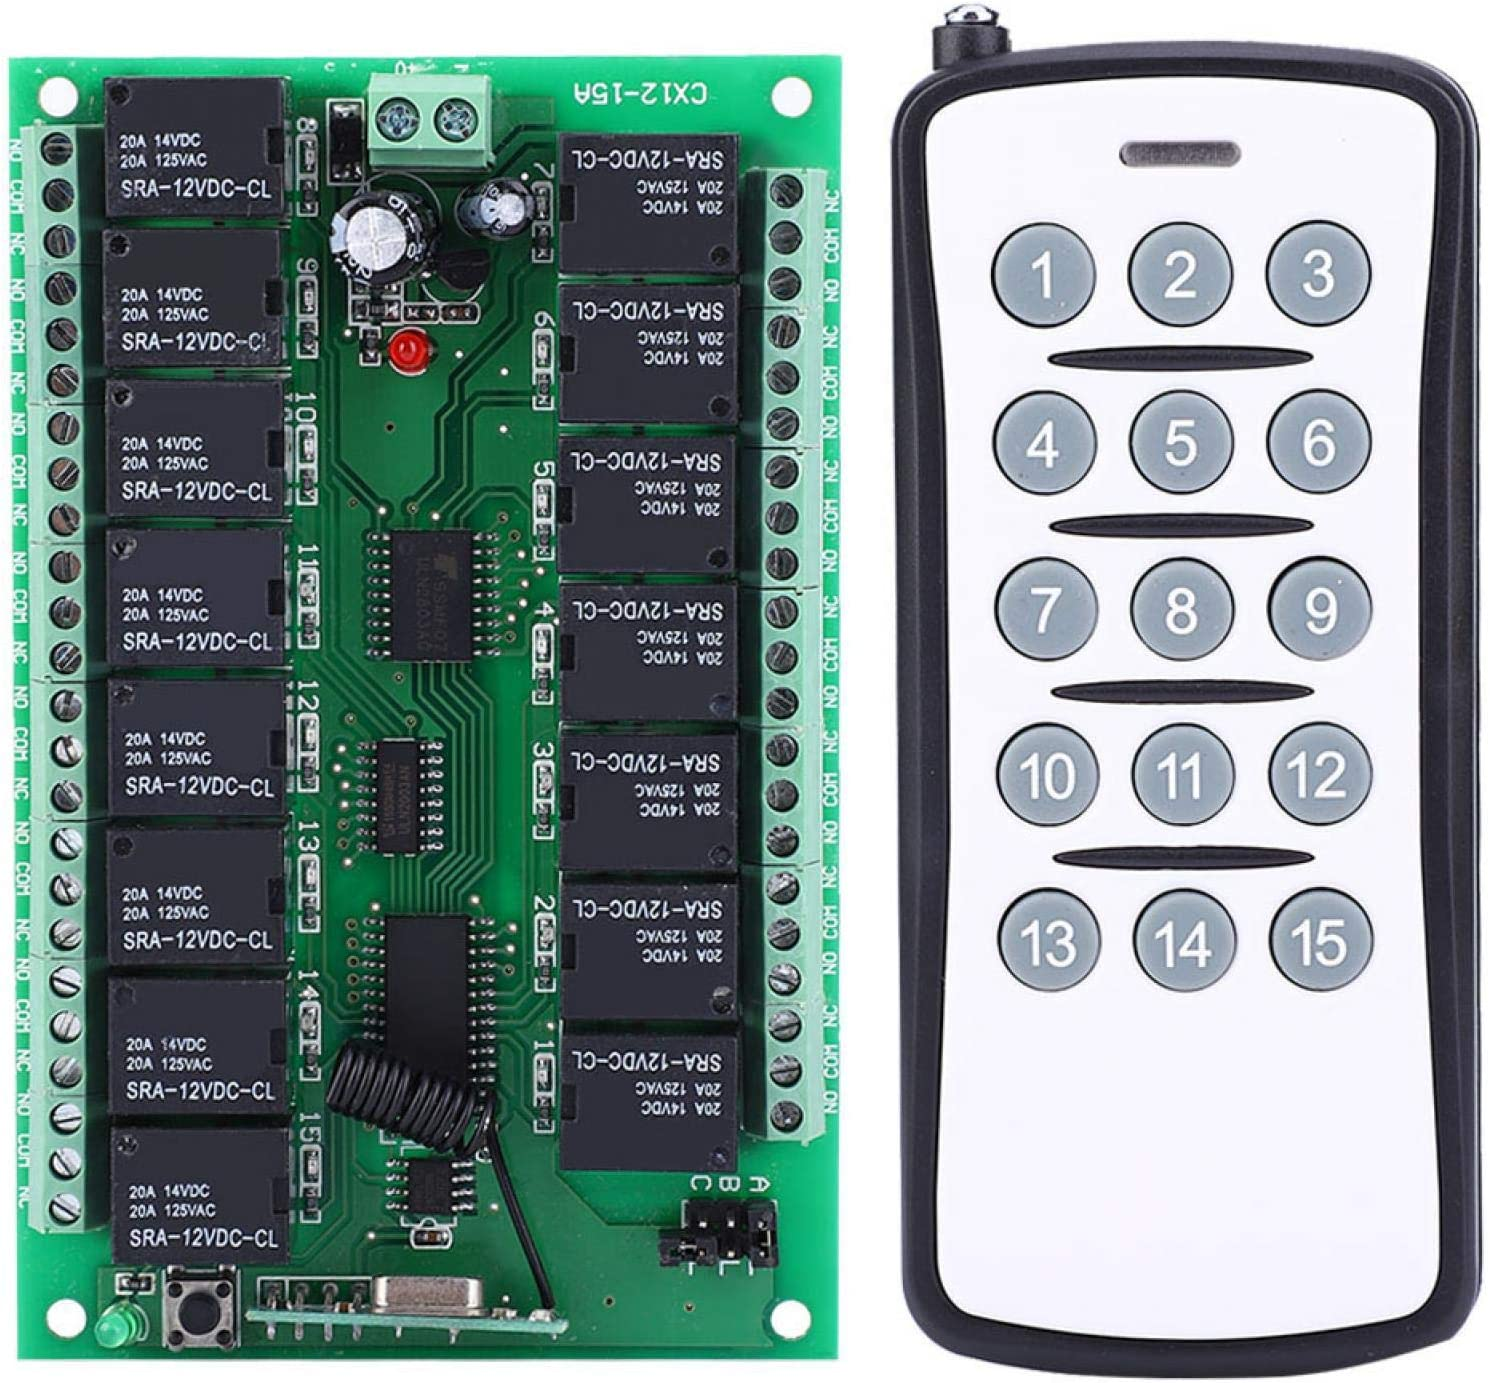 EVTSCAN DC 12V Wireless Remote Switch Max 41% OFF Bombing free shipping 15 Controller Transmitter